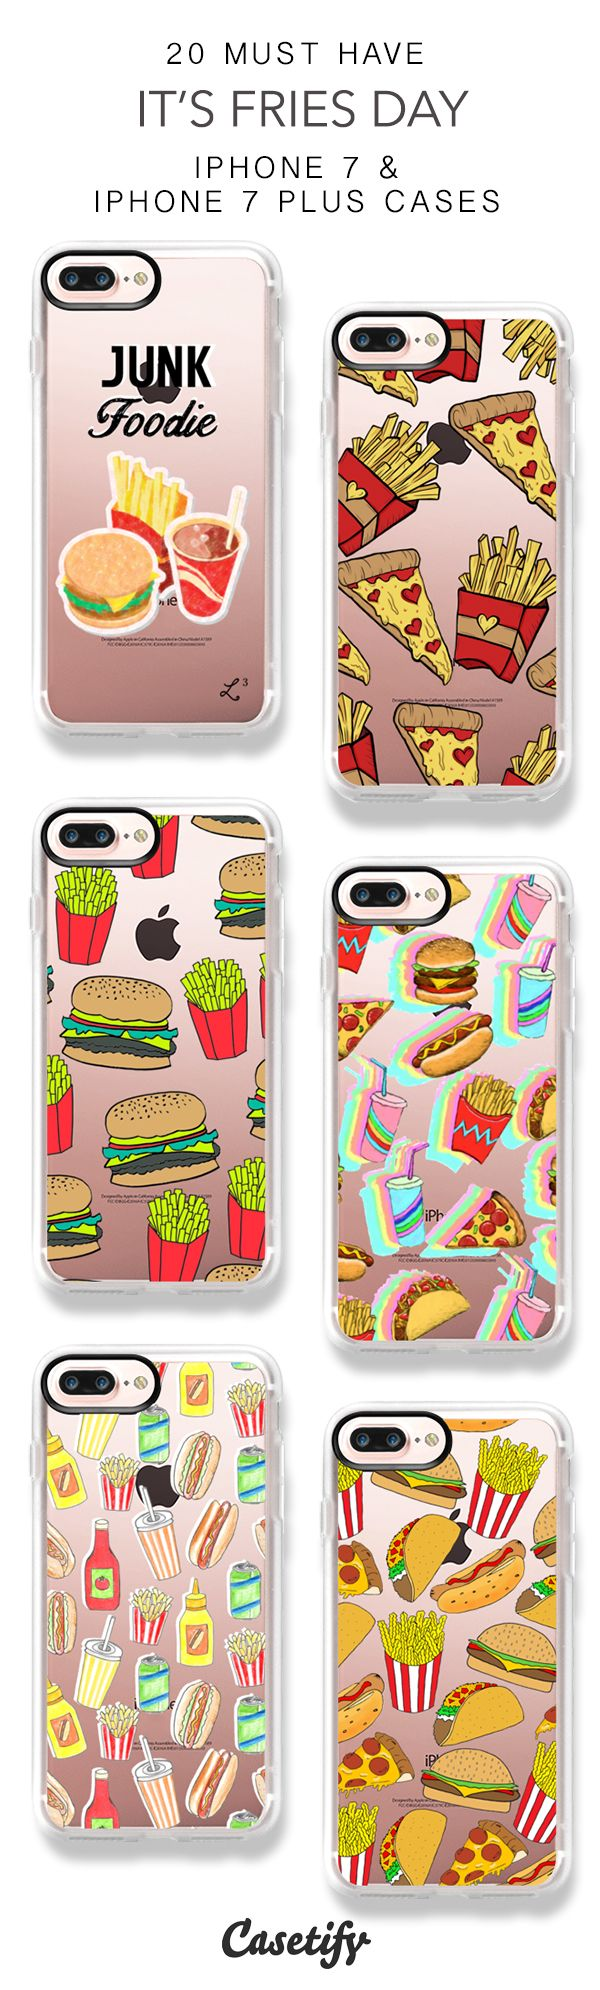 20 Must Have It's Fries Day iPhone 7 Cases and iPhone 7 Plus Cases. More Food iPhone case here > https://www.casetify.com/collections/top_100_designs#/?vc=N3HwoKH0ZA